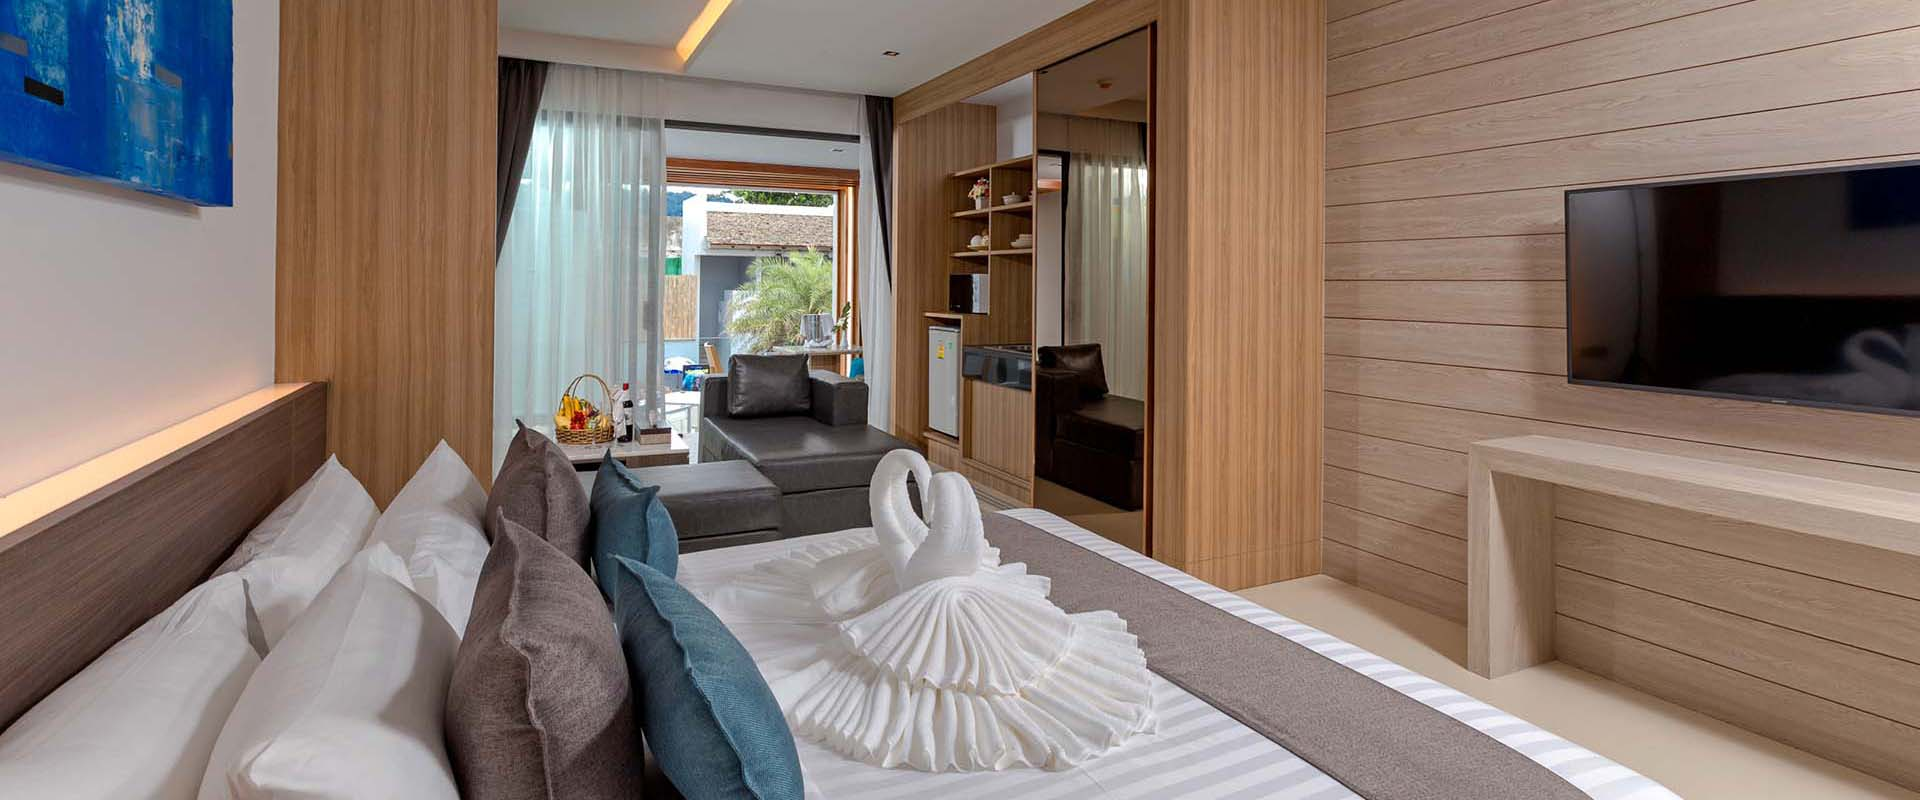 Luxury Beach Suites in Patong